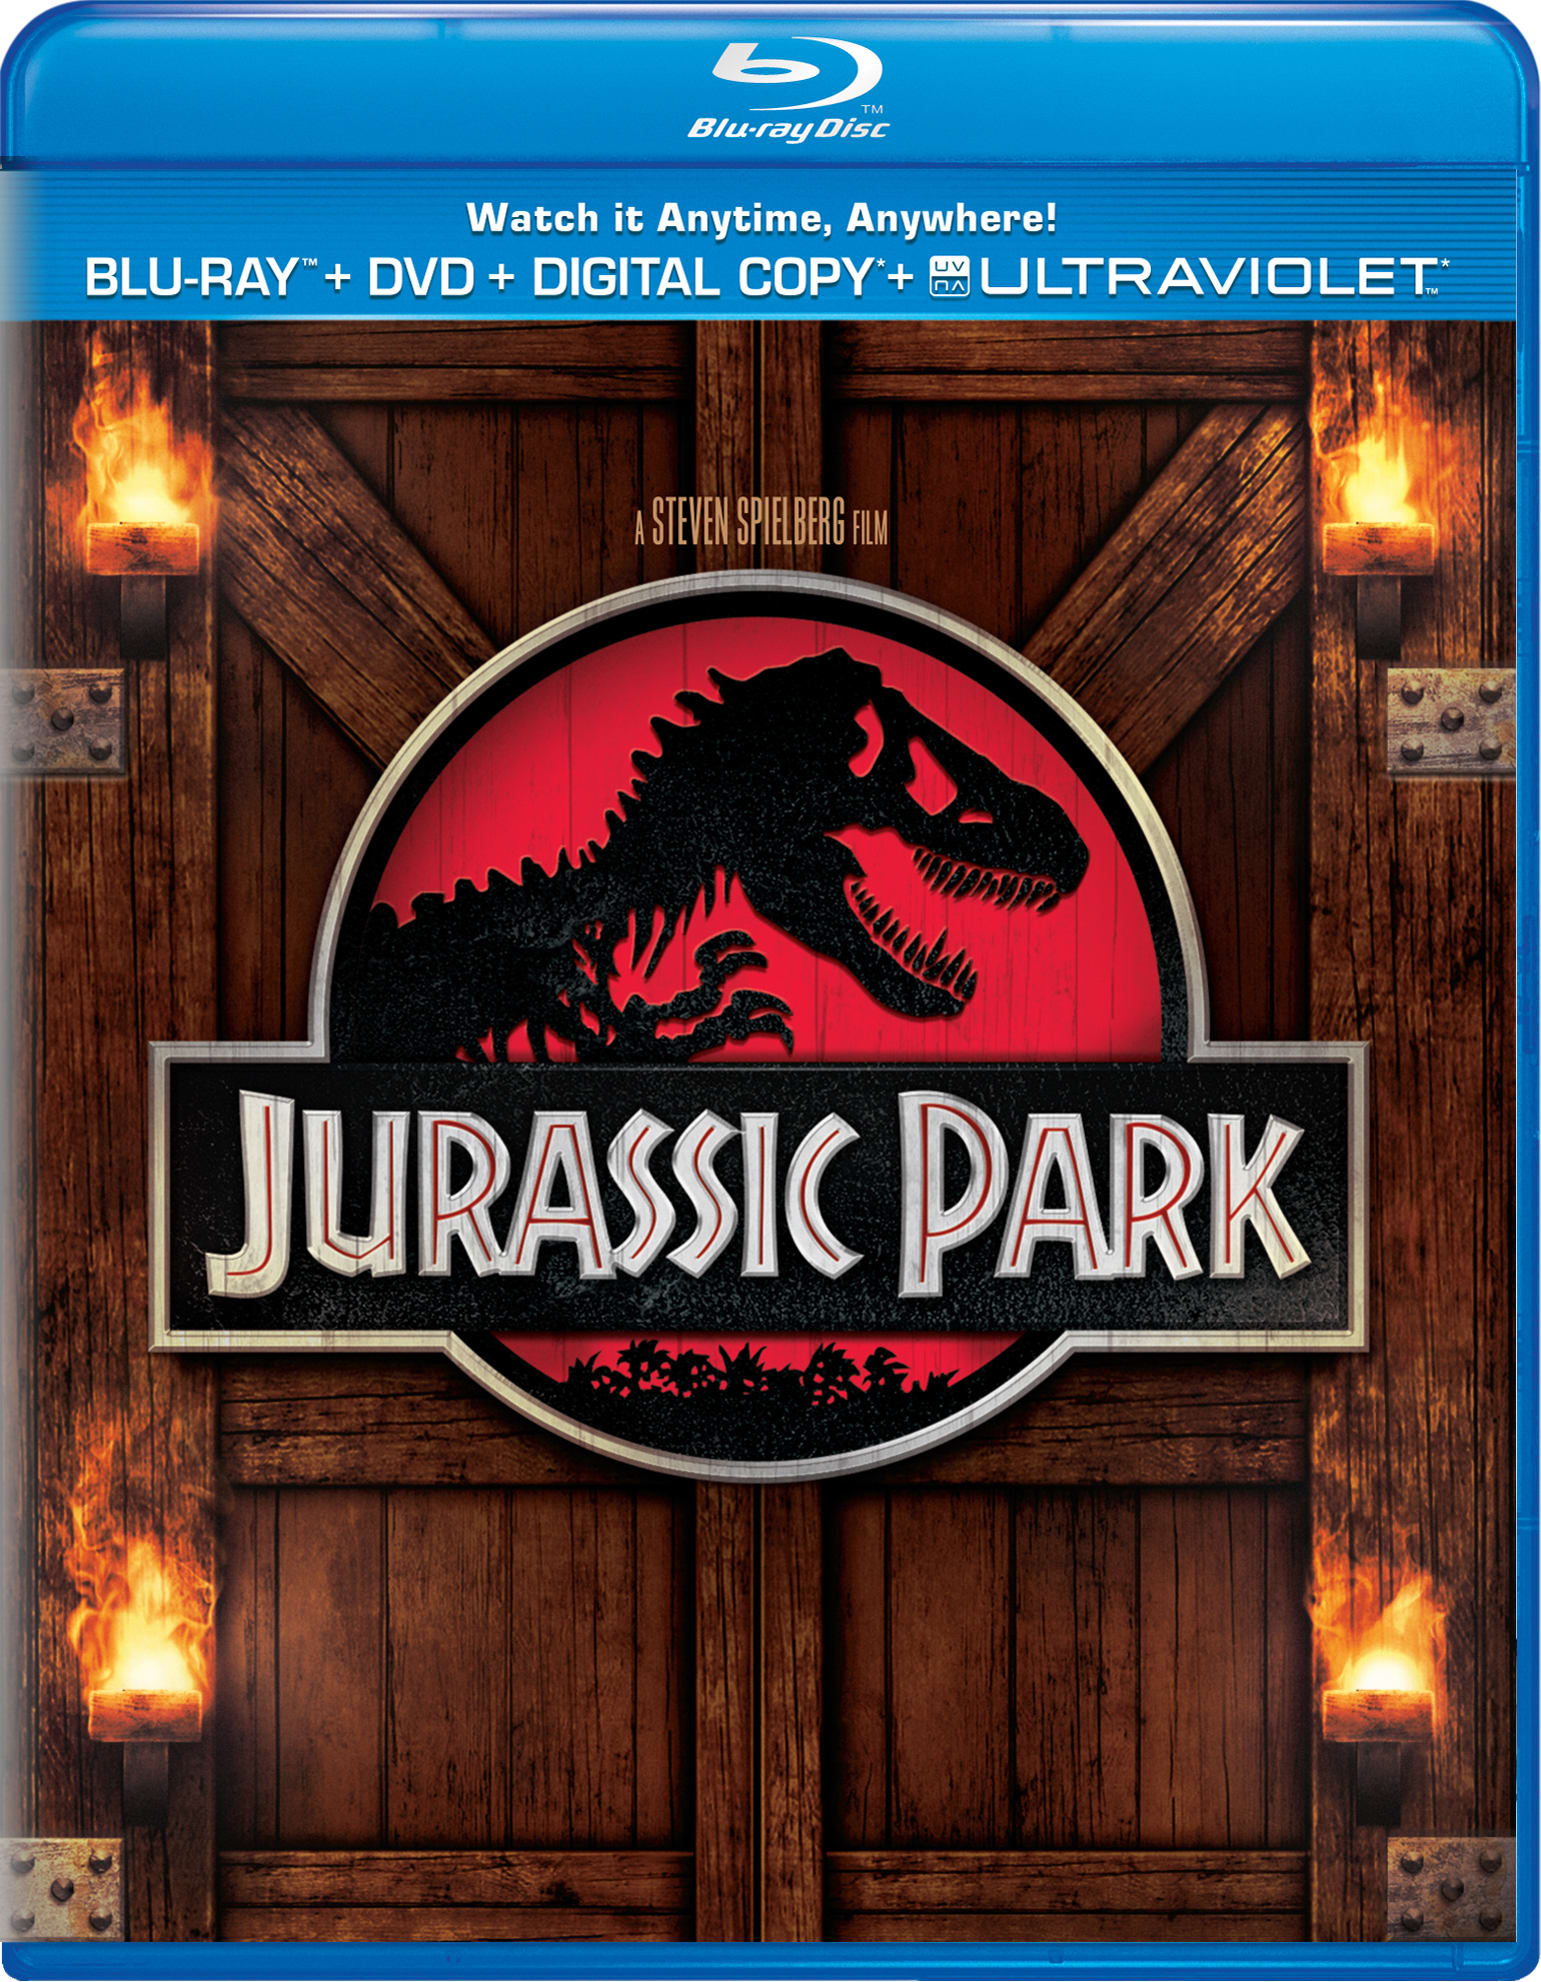 Jurassic Park (DVD + Digital + Ultraviolet) [Blu-ray]